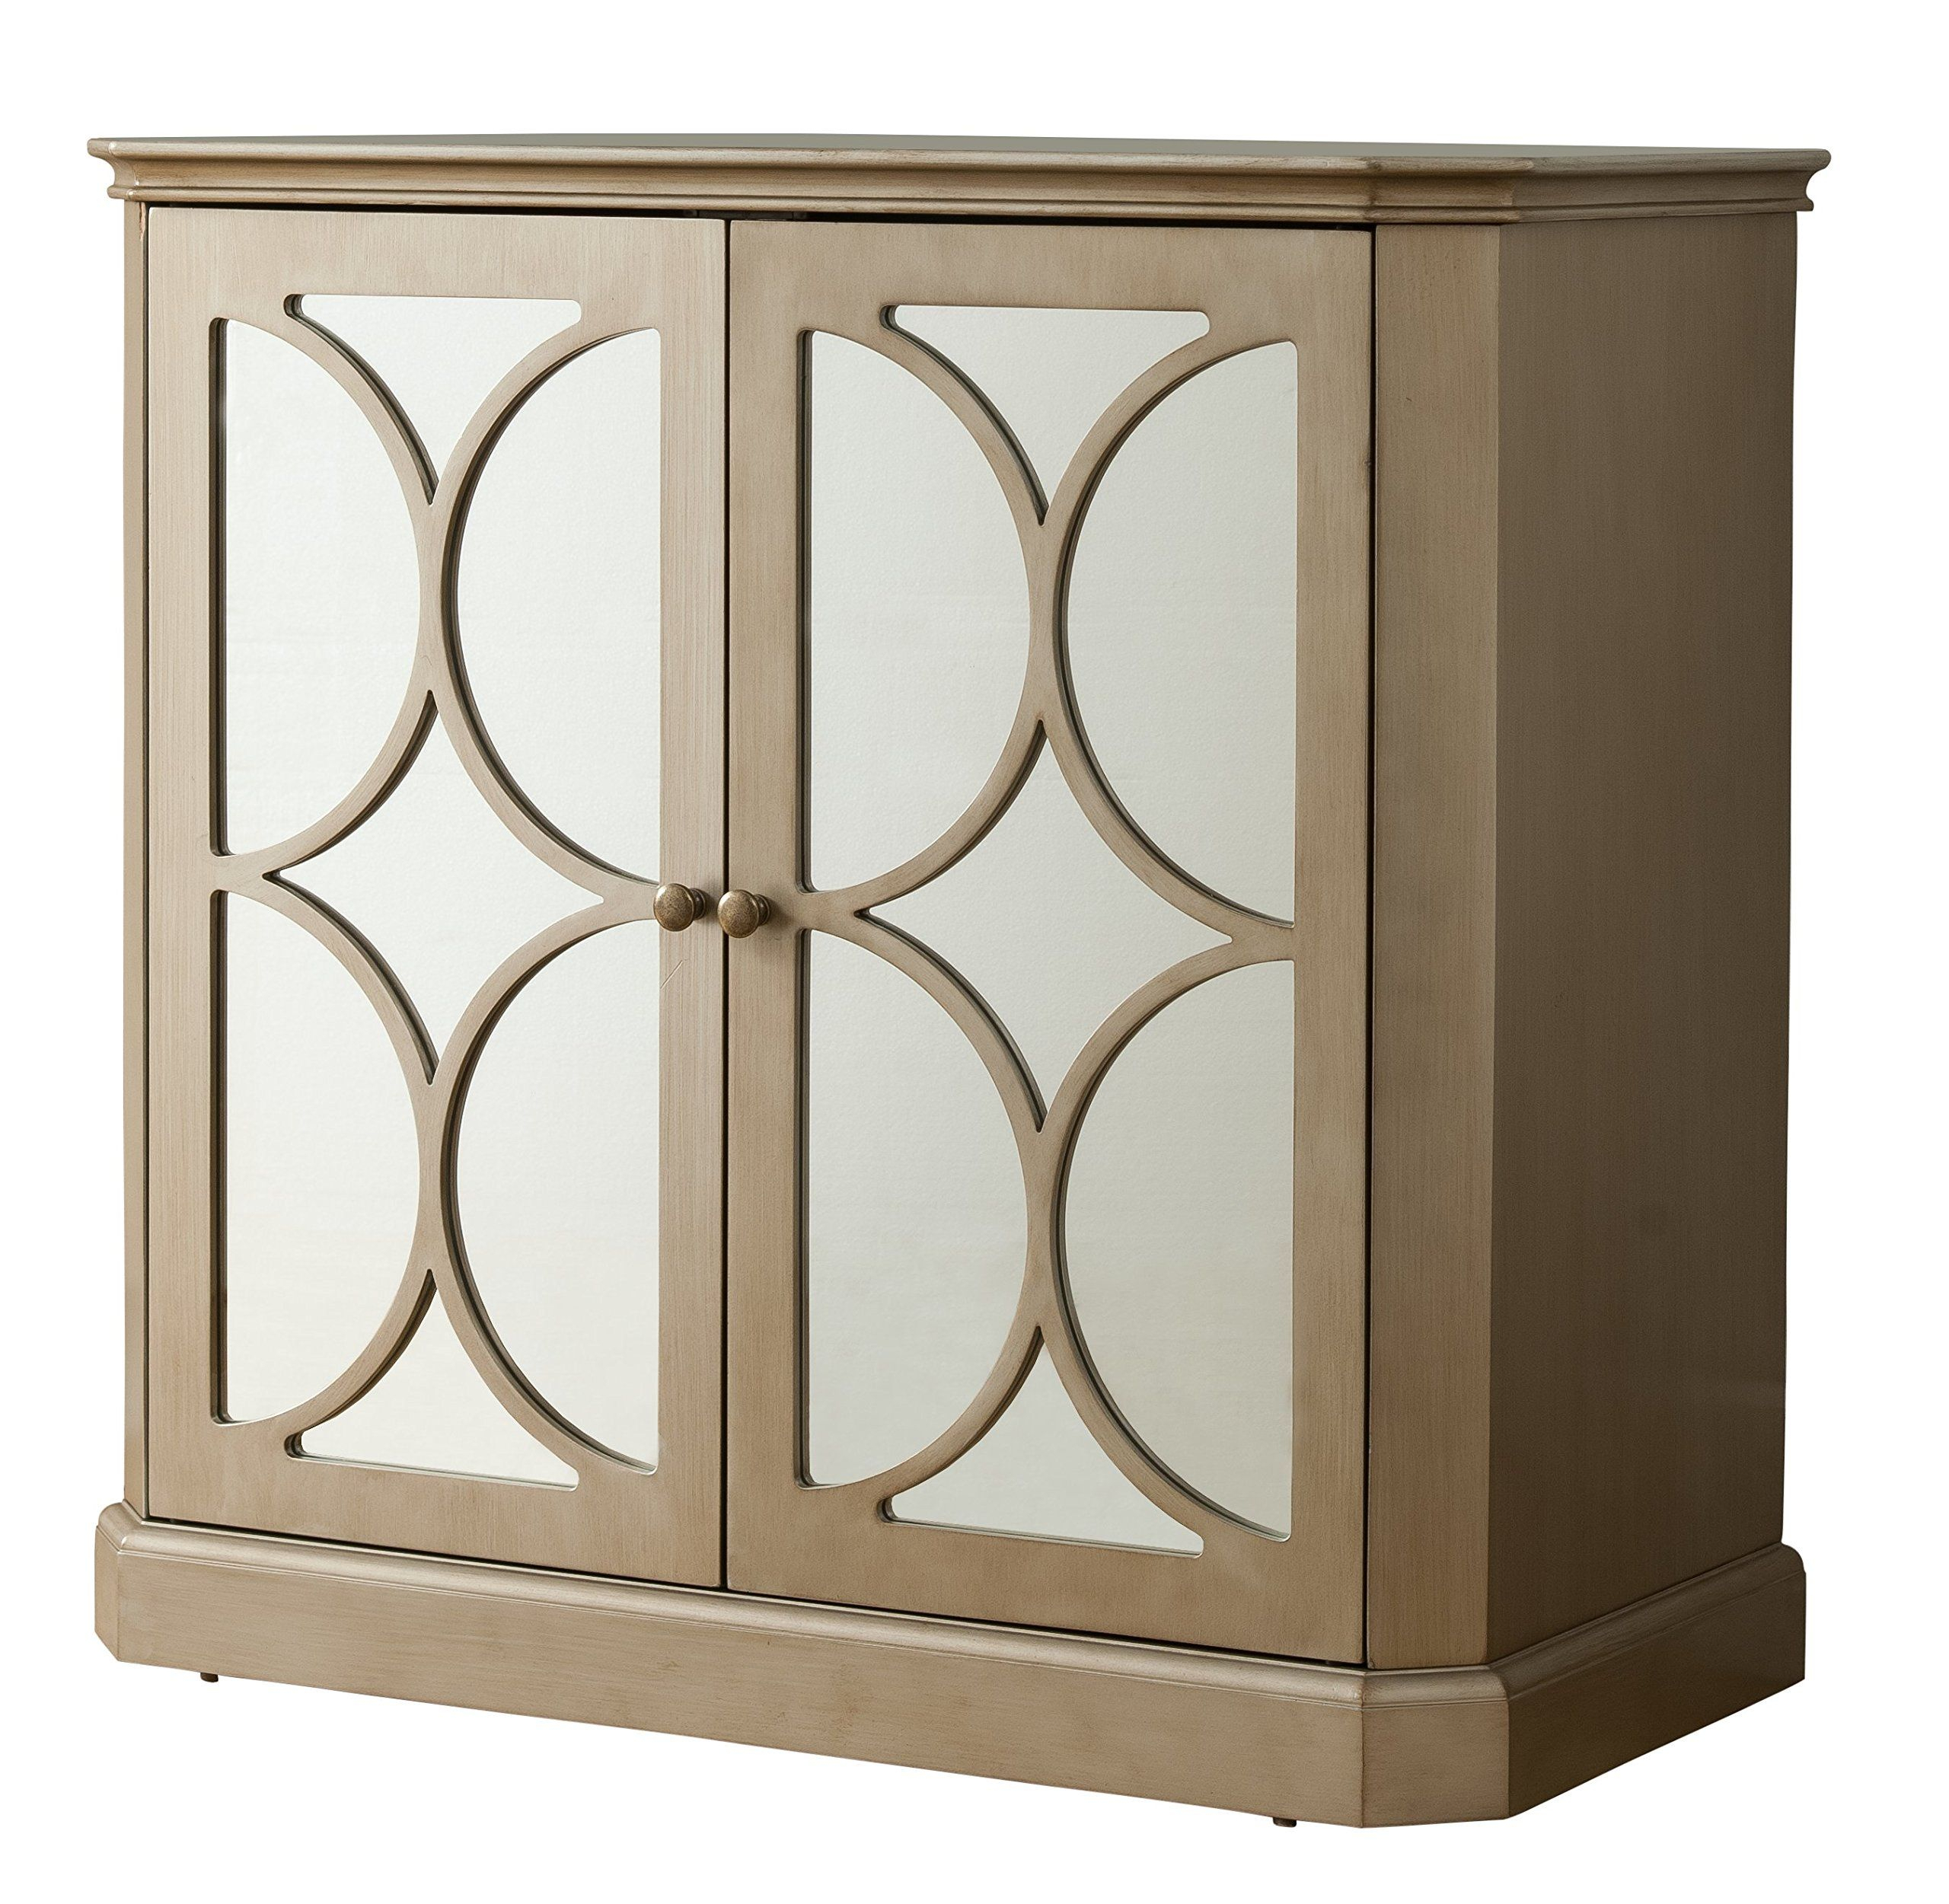 Pin On Living Room Furniture regarding Solid And Composite Wood Buffets In Cappuccino Finish (Image 13 of 30)